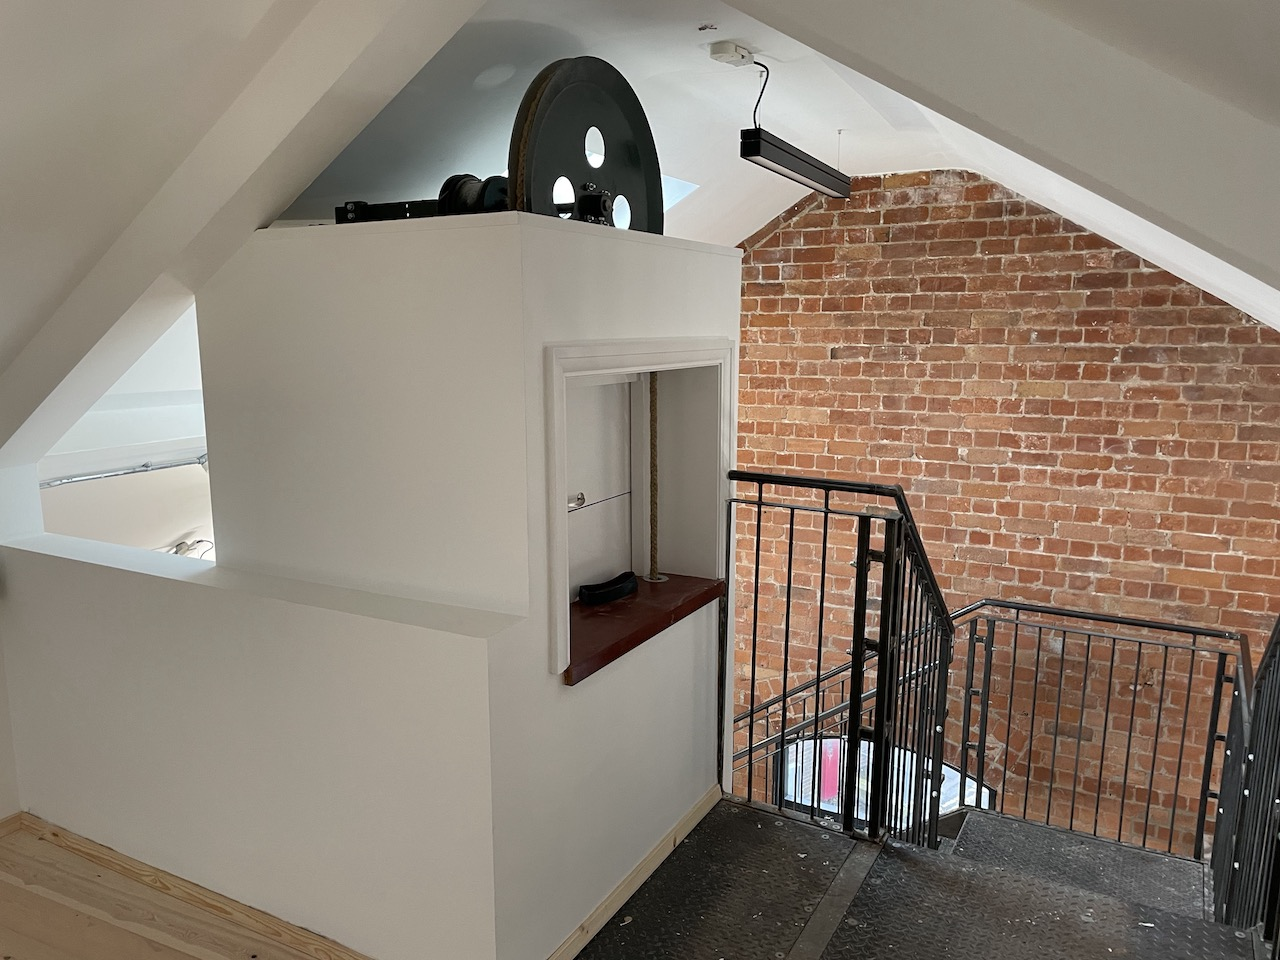 Interior view of the new Reading Room showing the stairs and the dumbwaiter